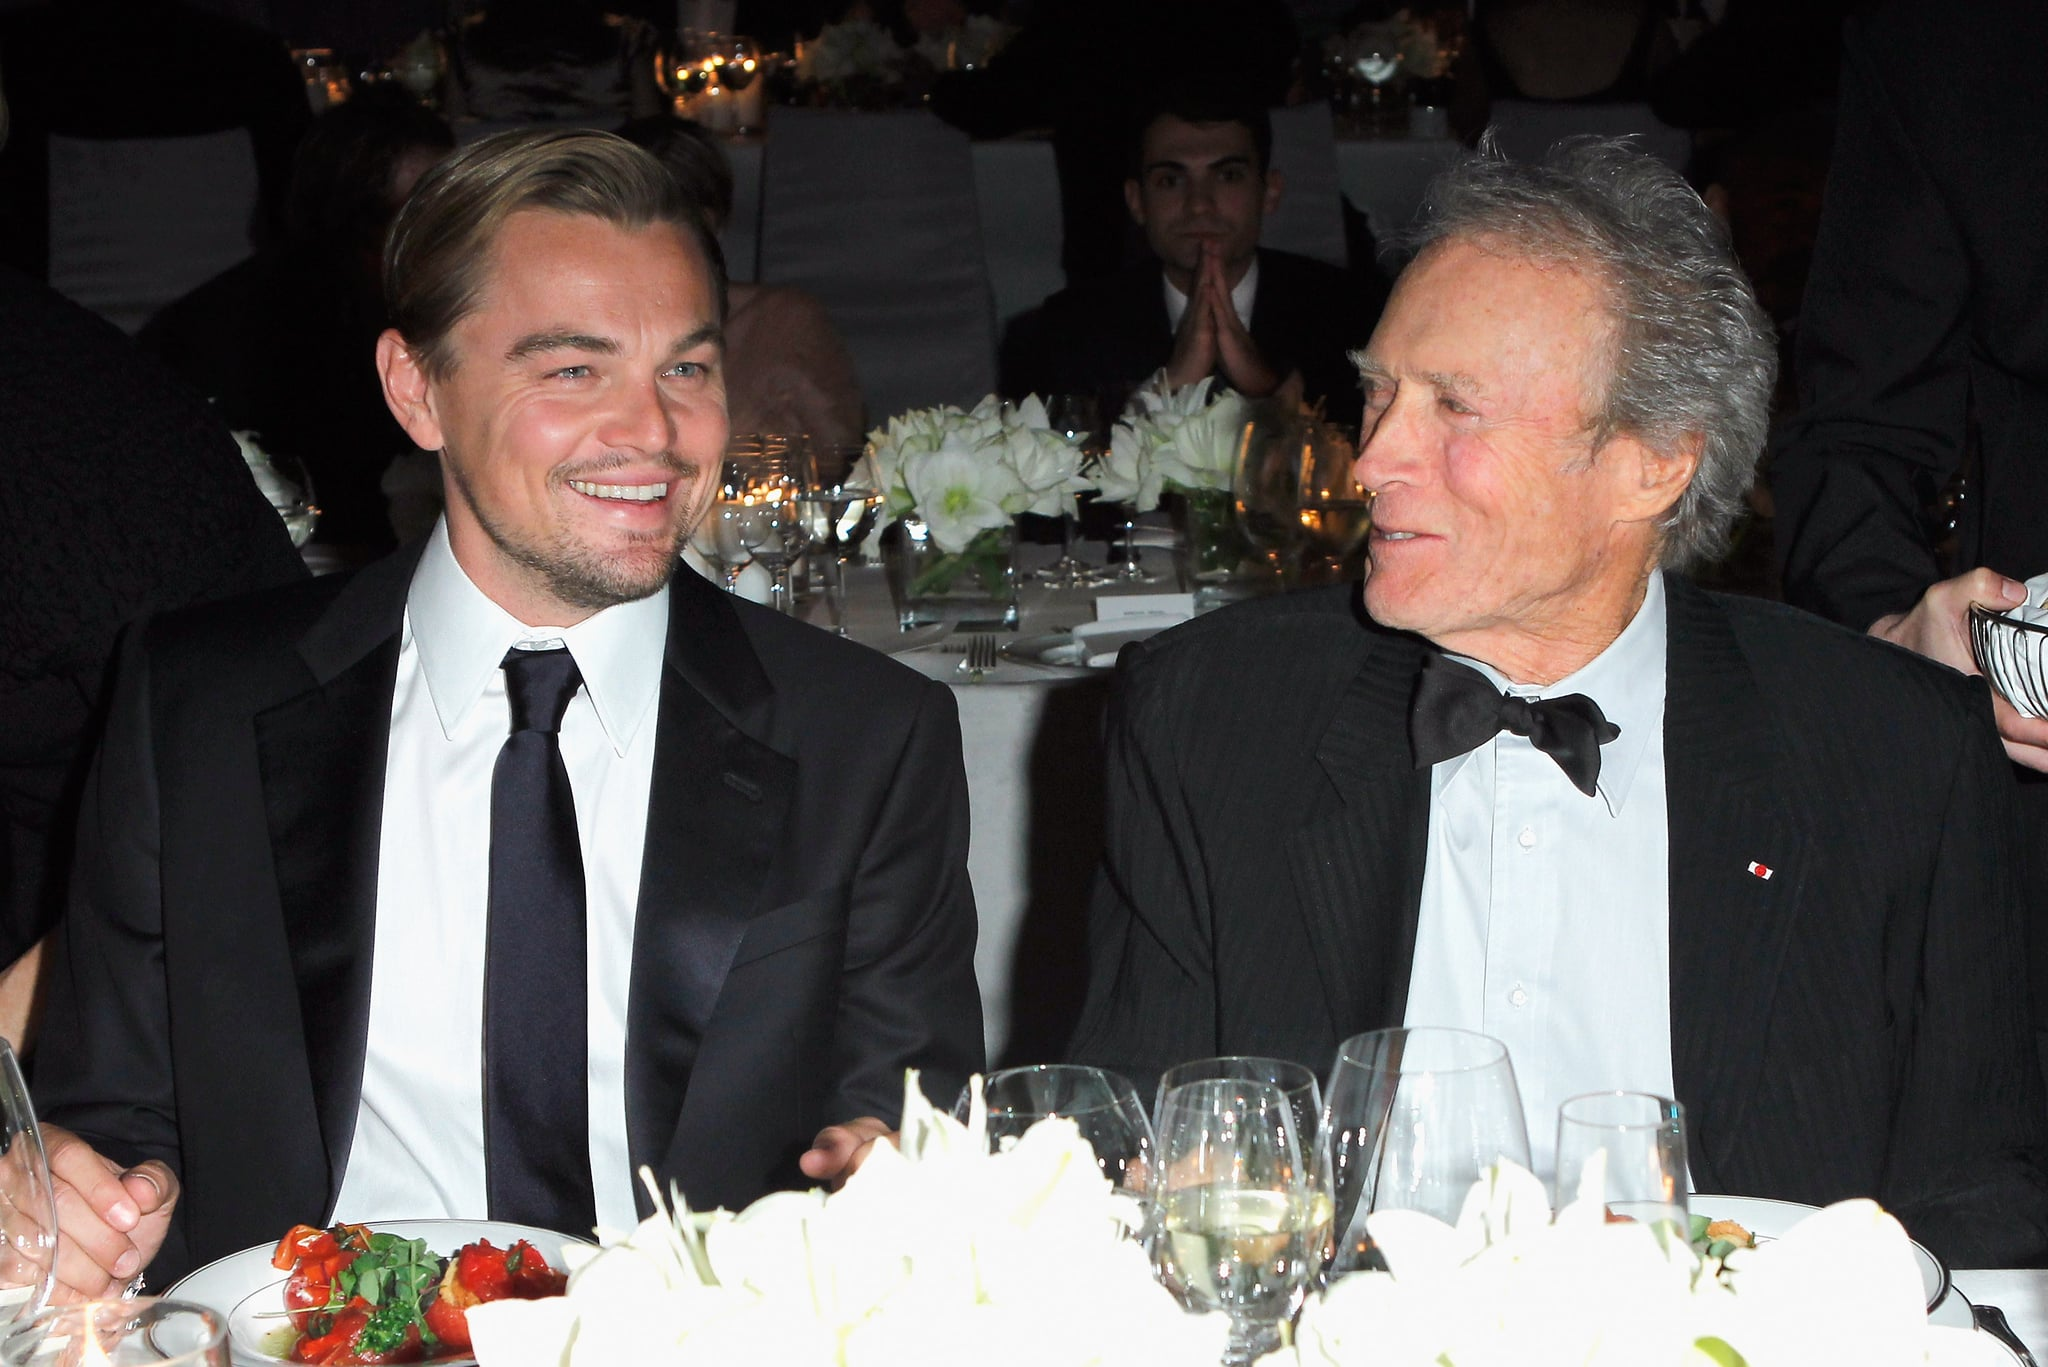 Leonardo DiCaprio sat down to dinner with his J. Edgar director Clint Eastwood.